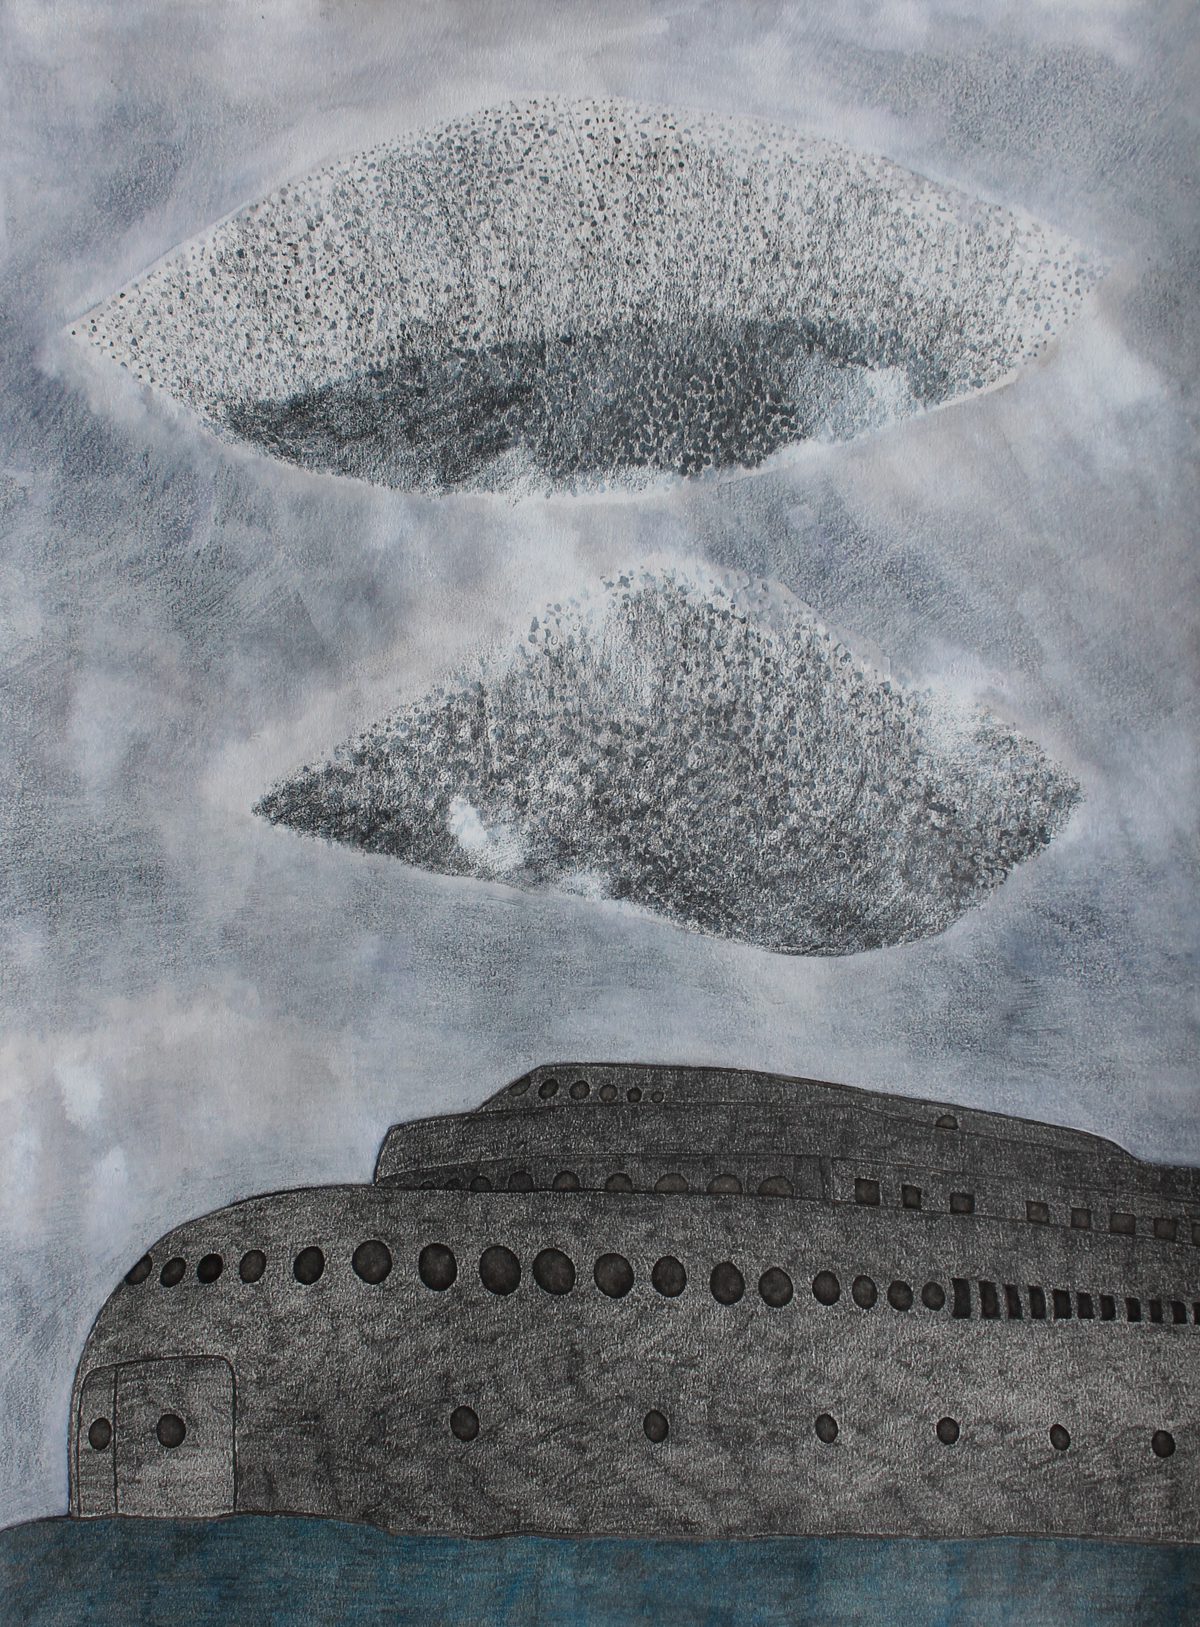 Outside , 2012, ink and graphite on paper, 14 x 11 inches